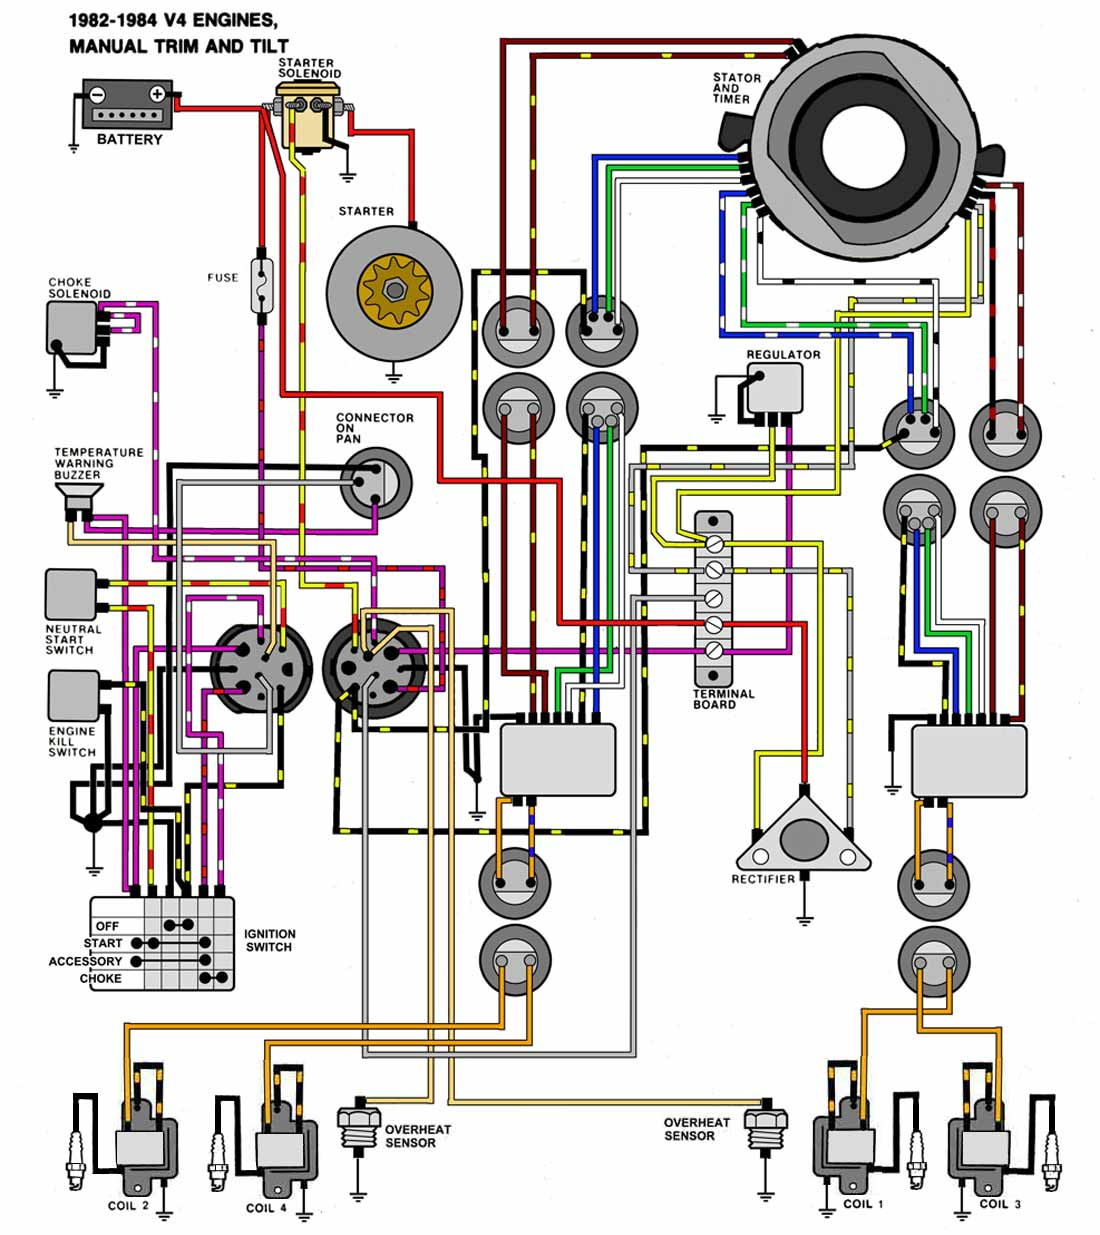 evinrude outboard ignition switch wiring diagram rv 1982 90hp wire colors page 1